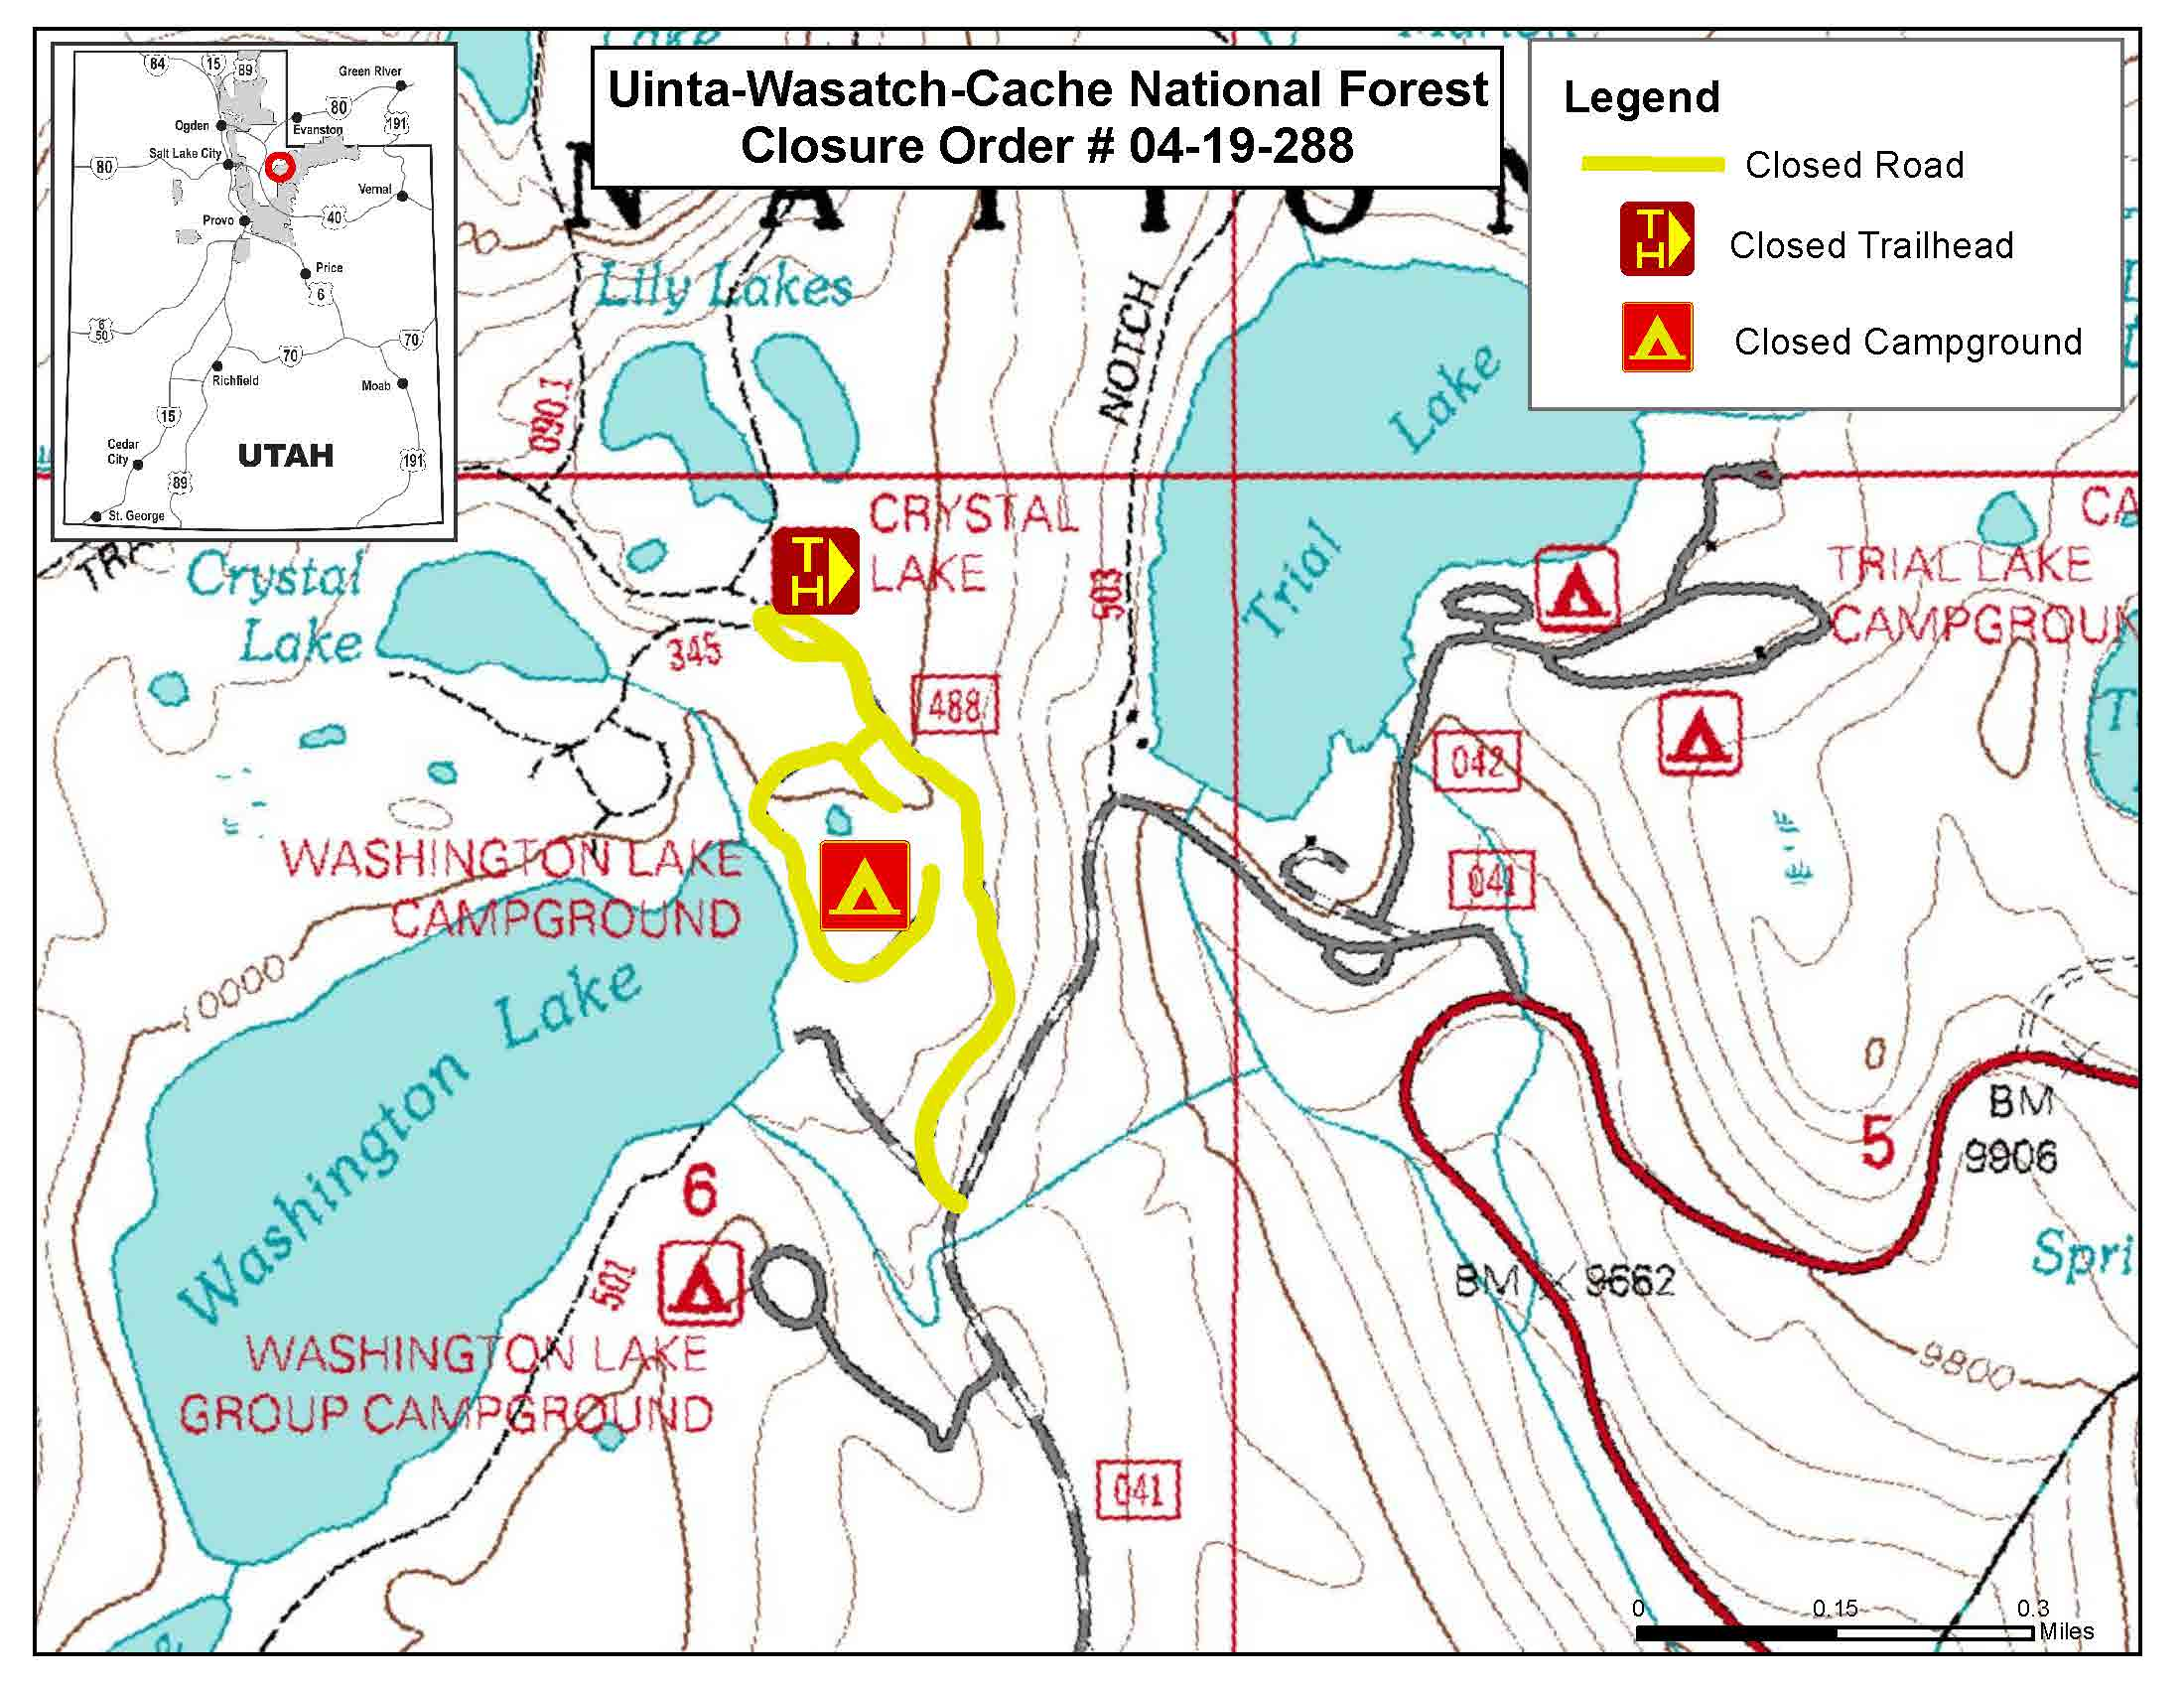 Uinta-Wasatch-Cache National Forest - Maps & Publications